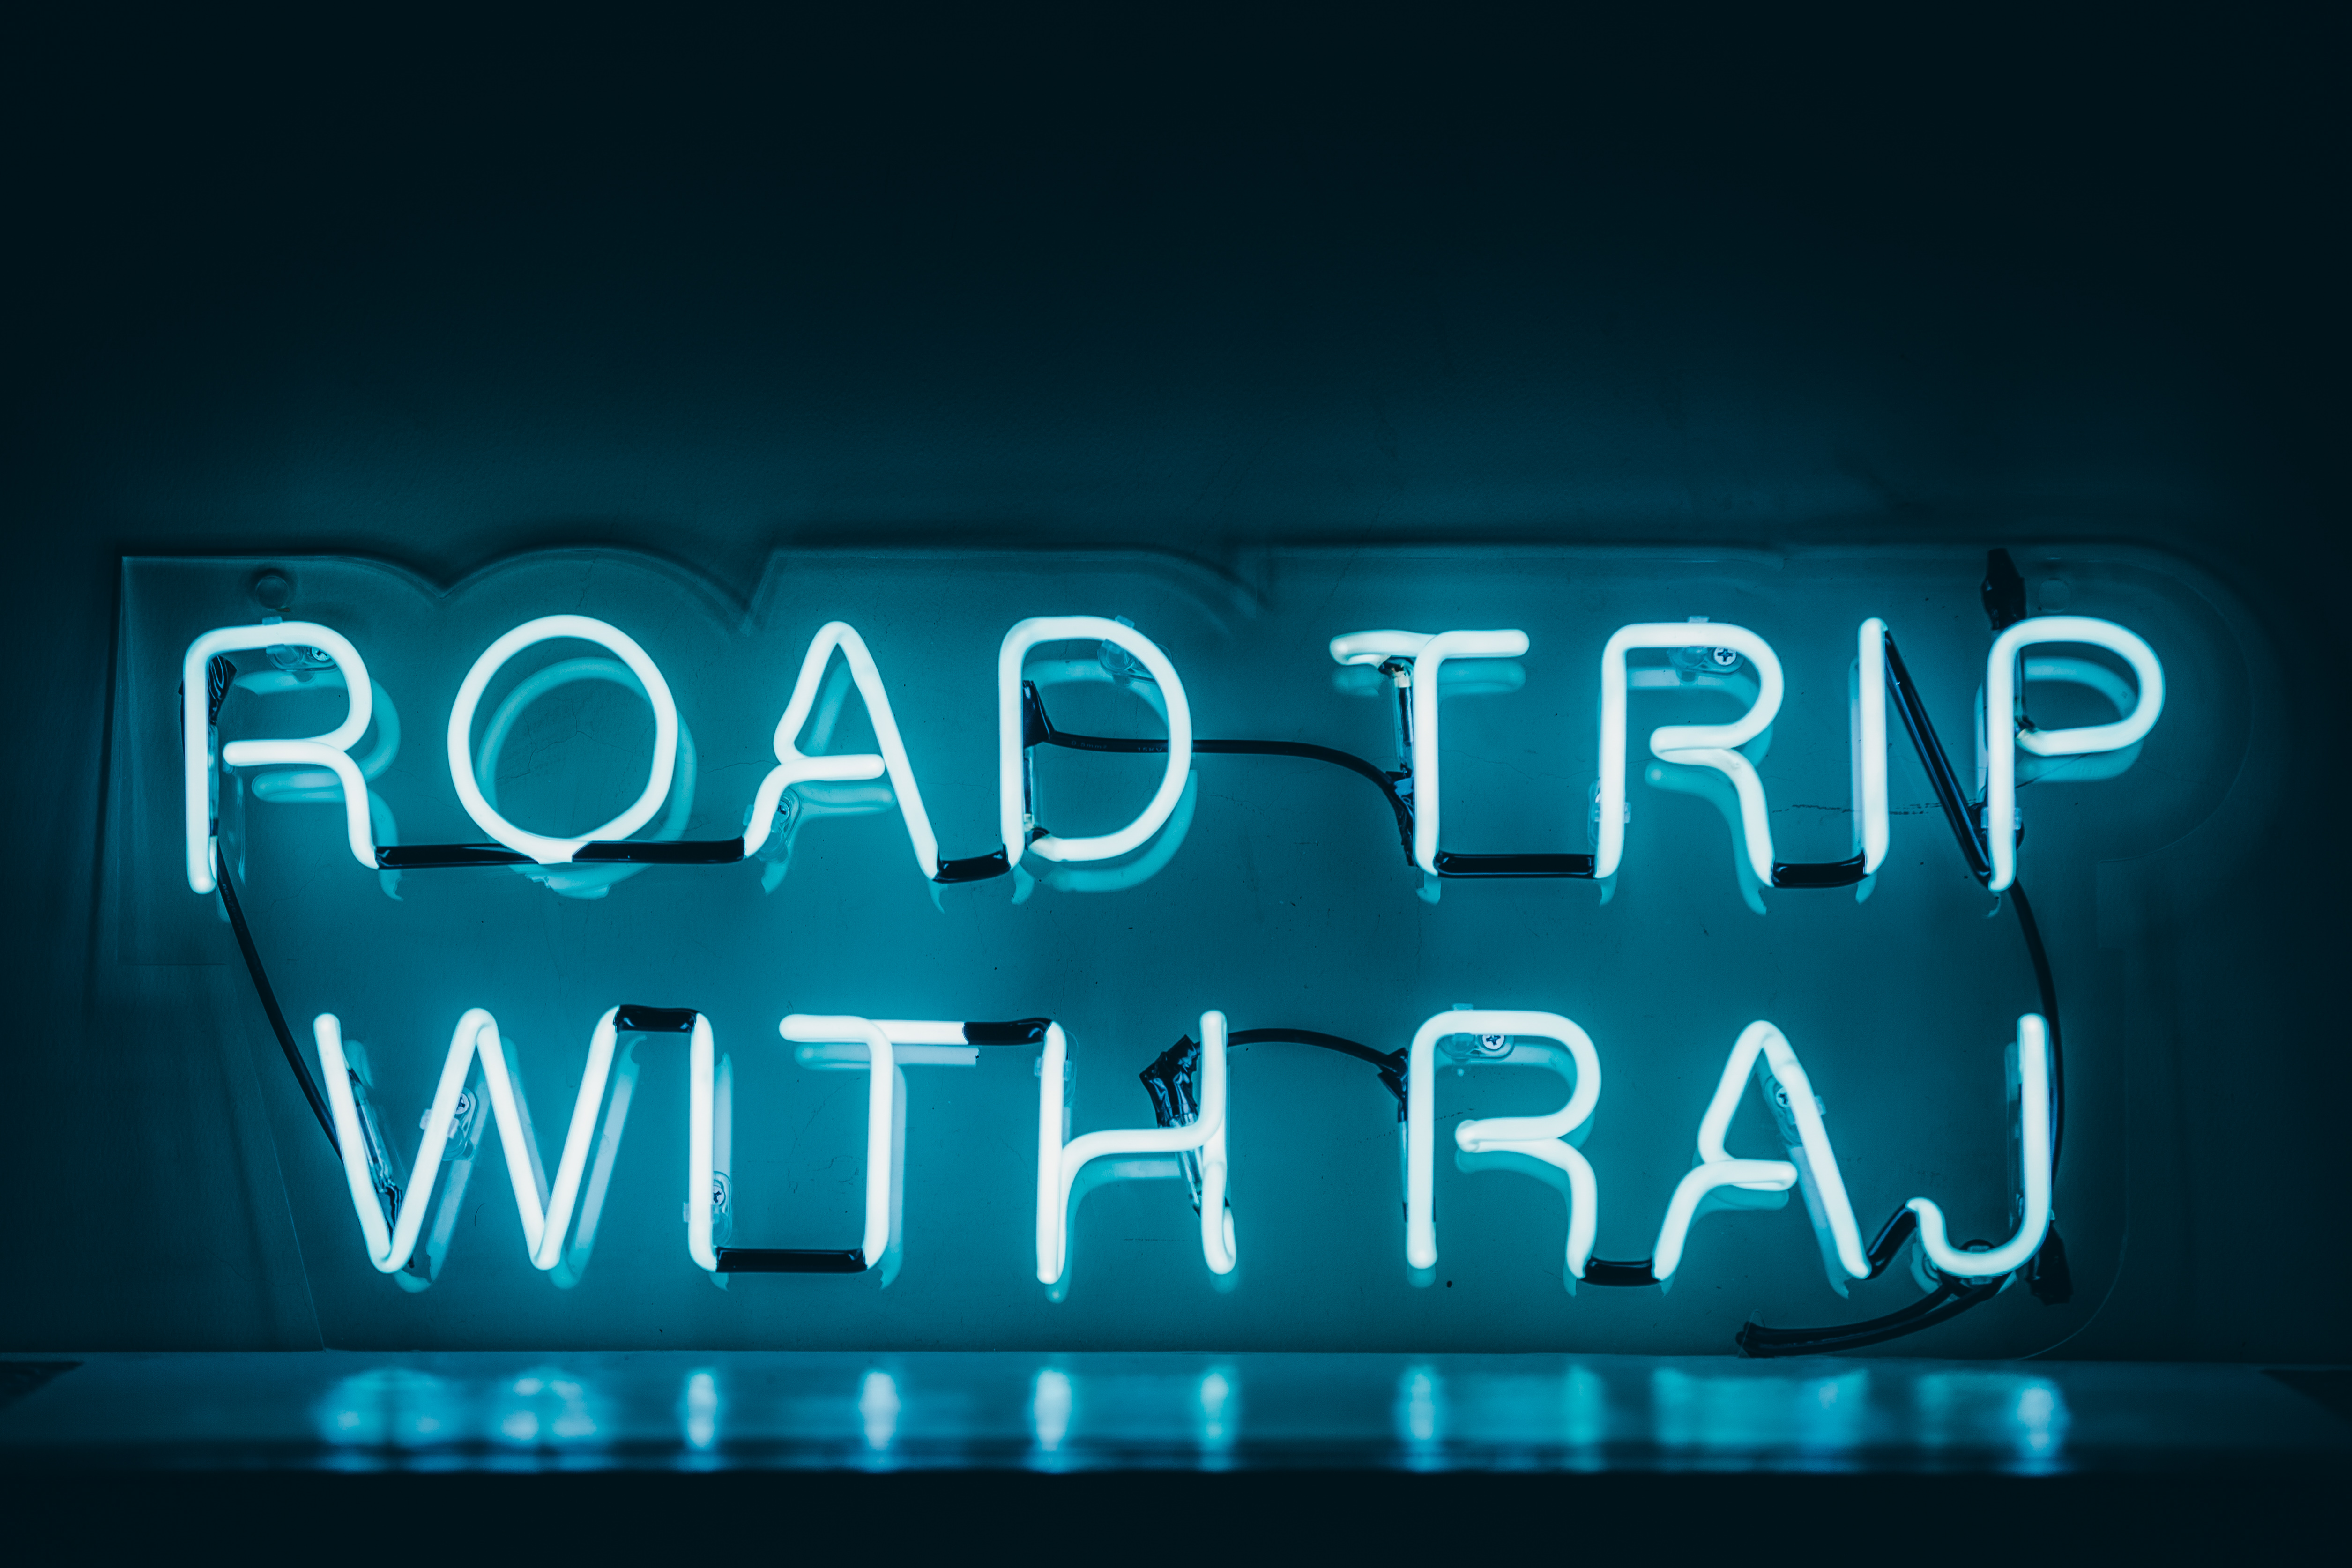 Let the neon light lead your adventure…